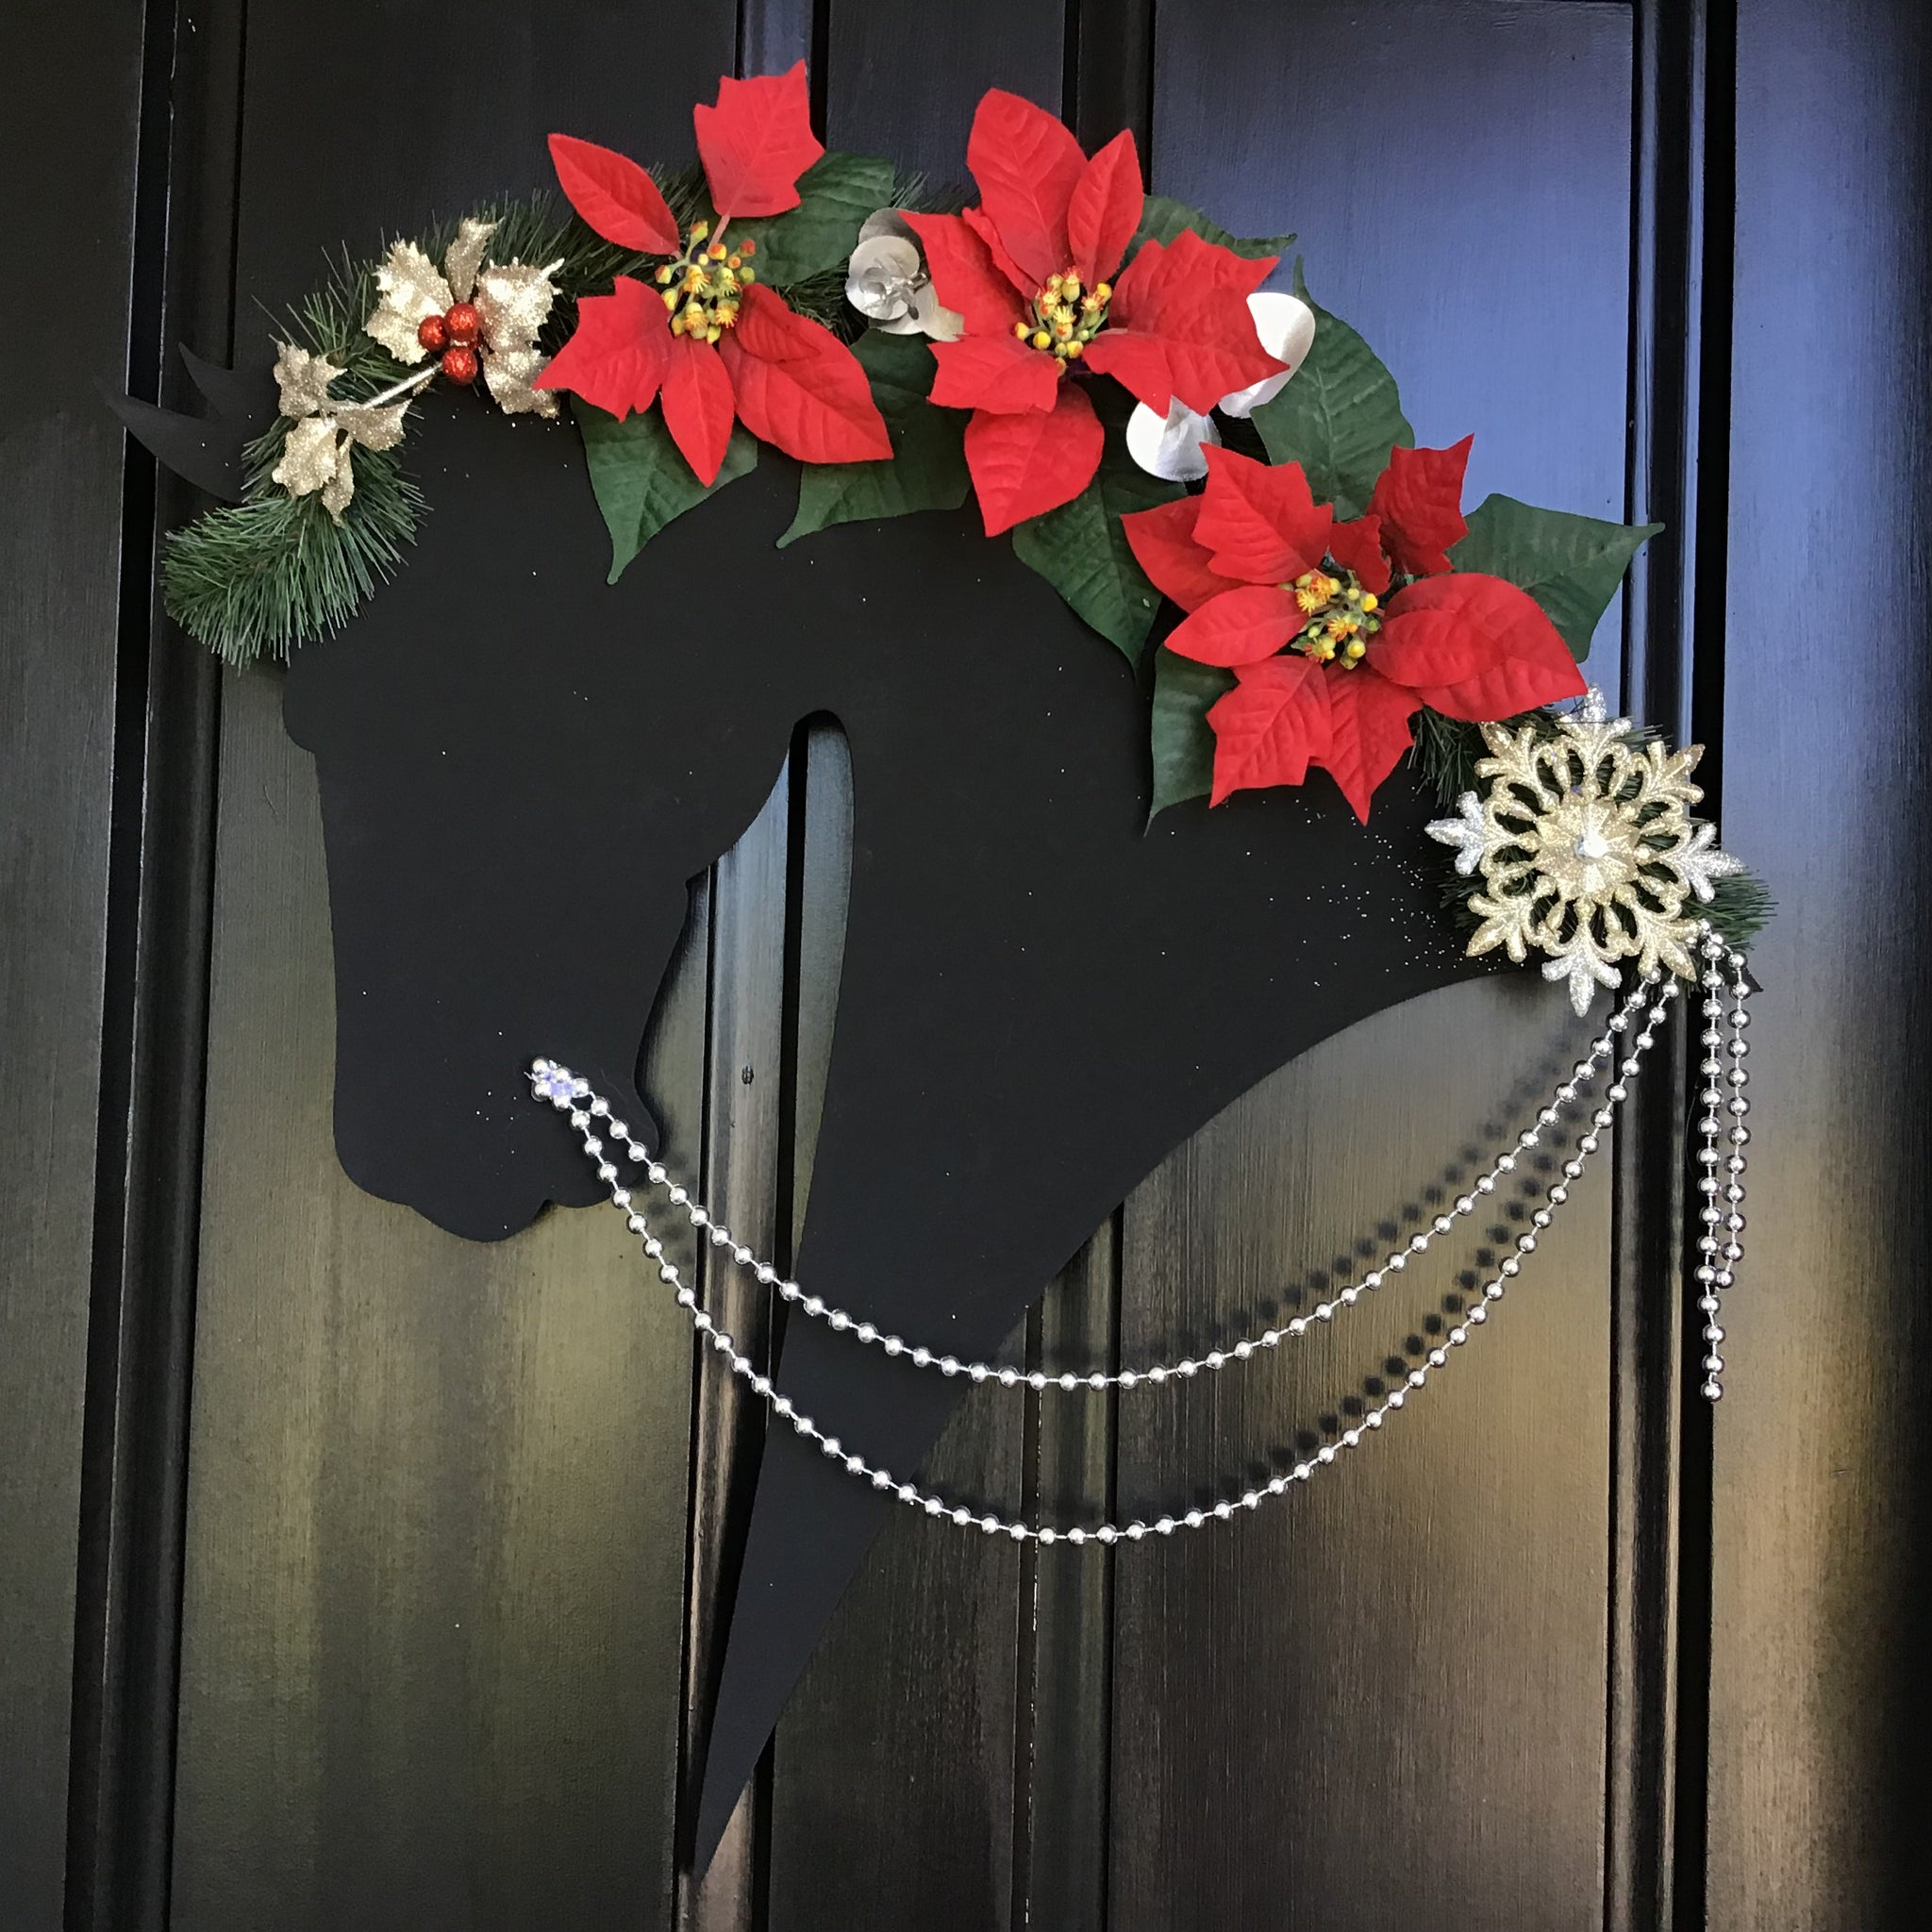 Horse Christmas Wreath: Holly - Horseshoe Mementoes